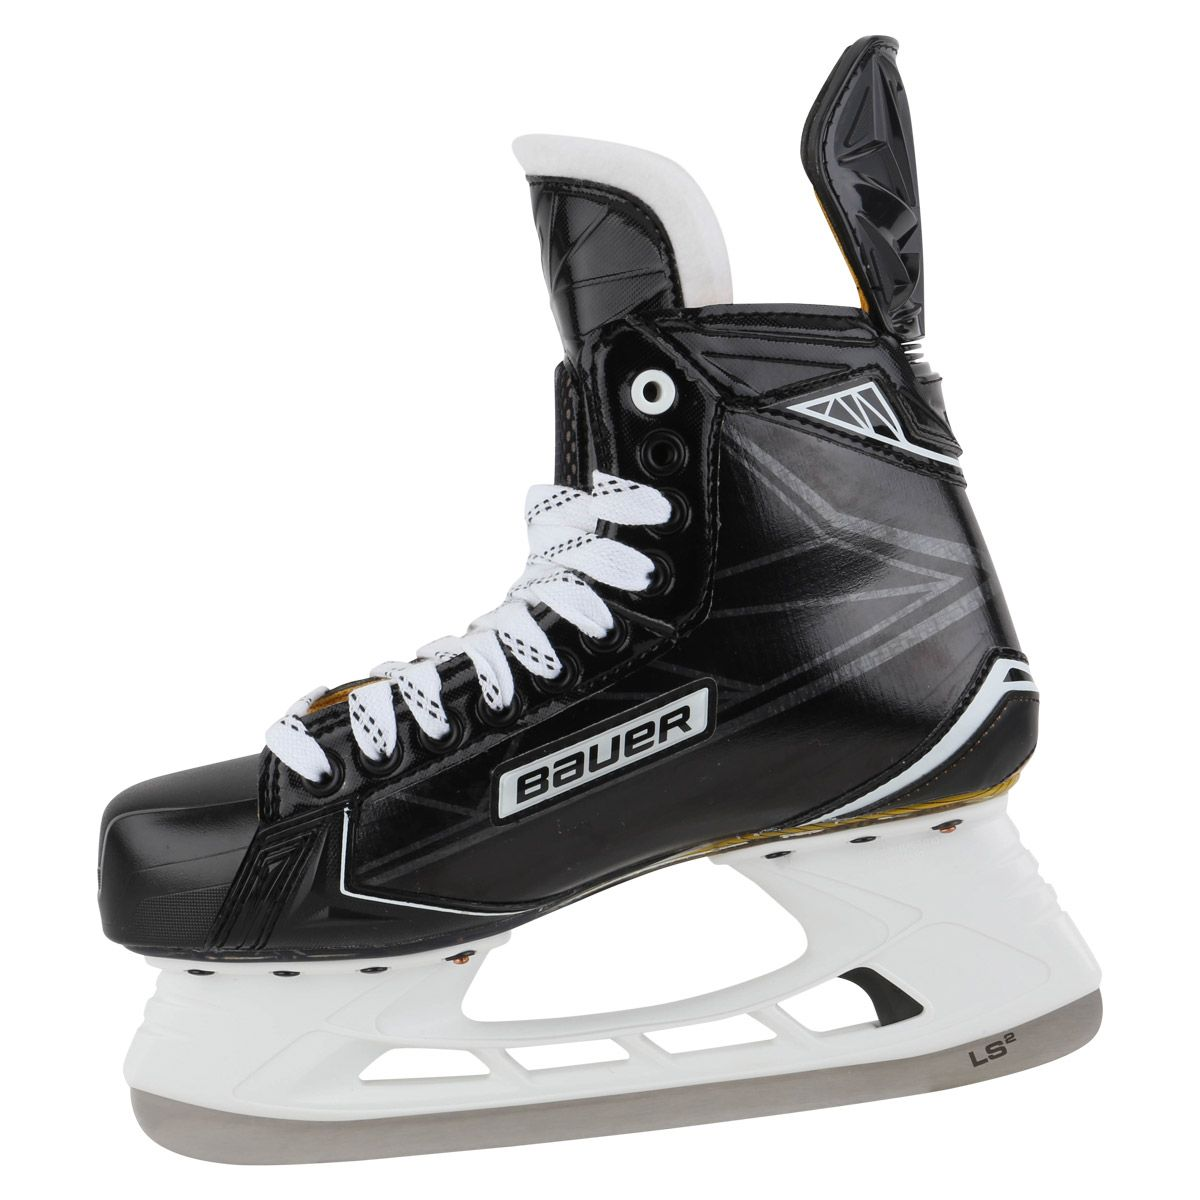 Фото 4: КОНЬКИ BAUER SUPREME S180 JR